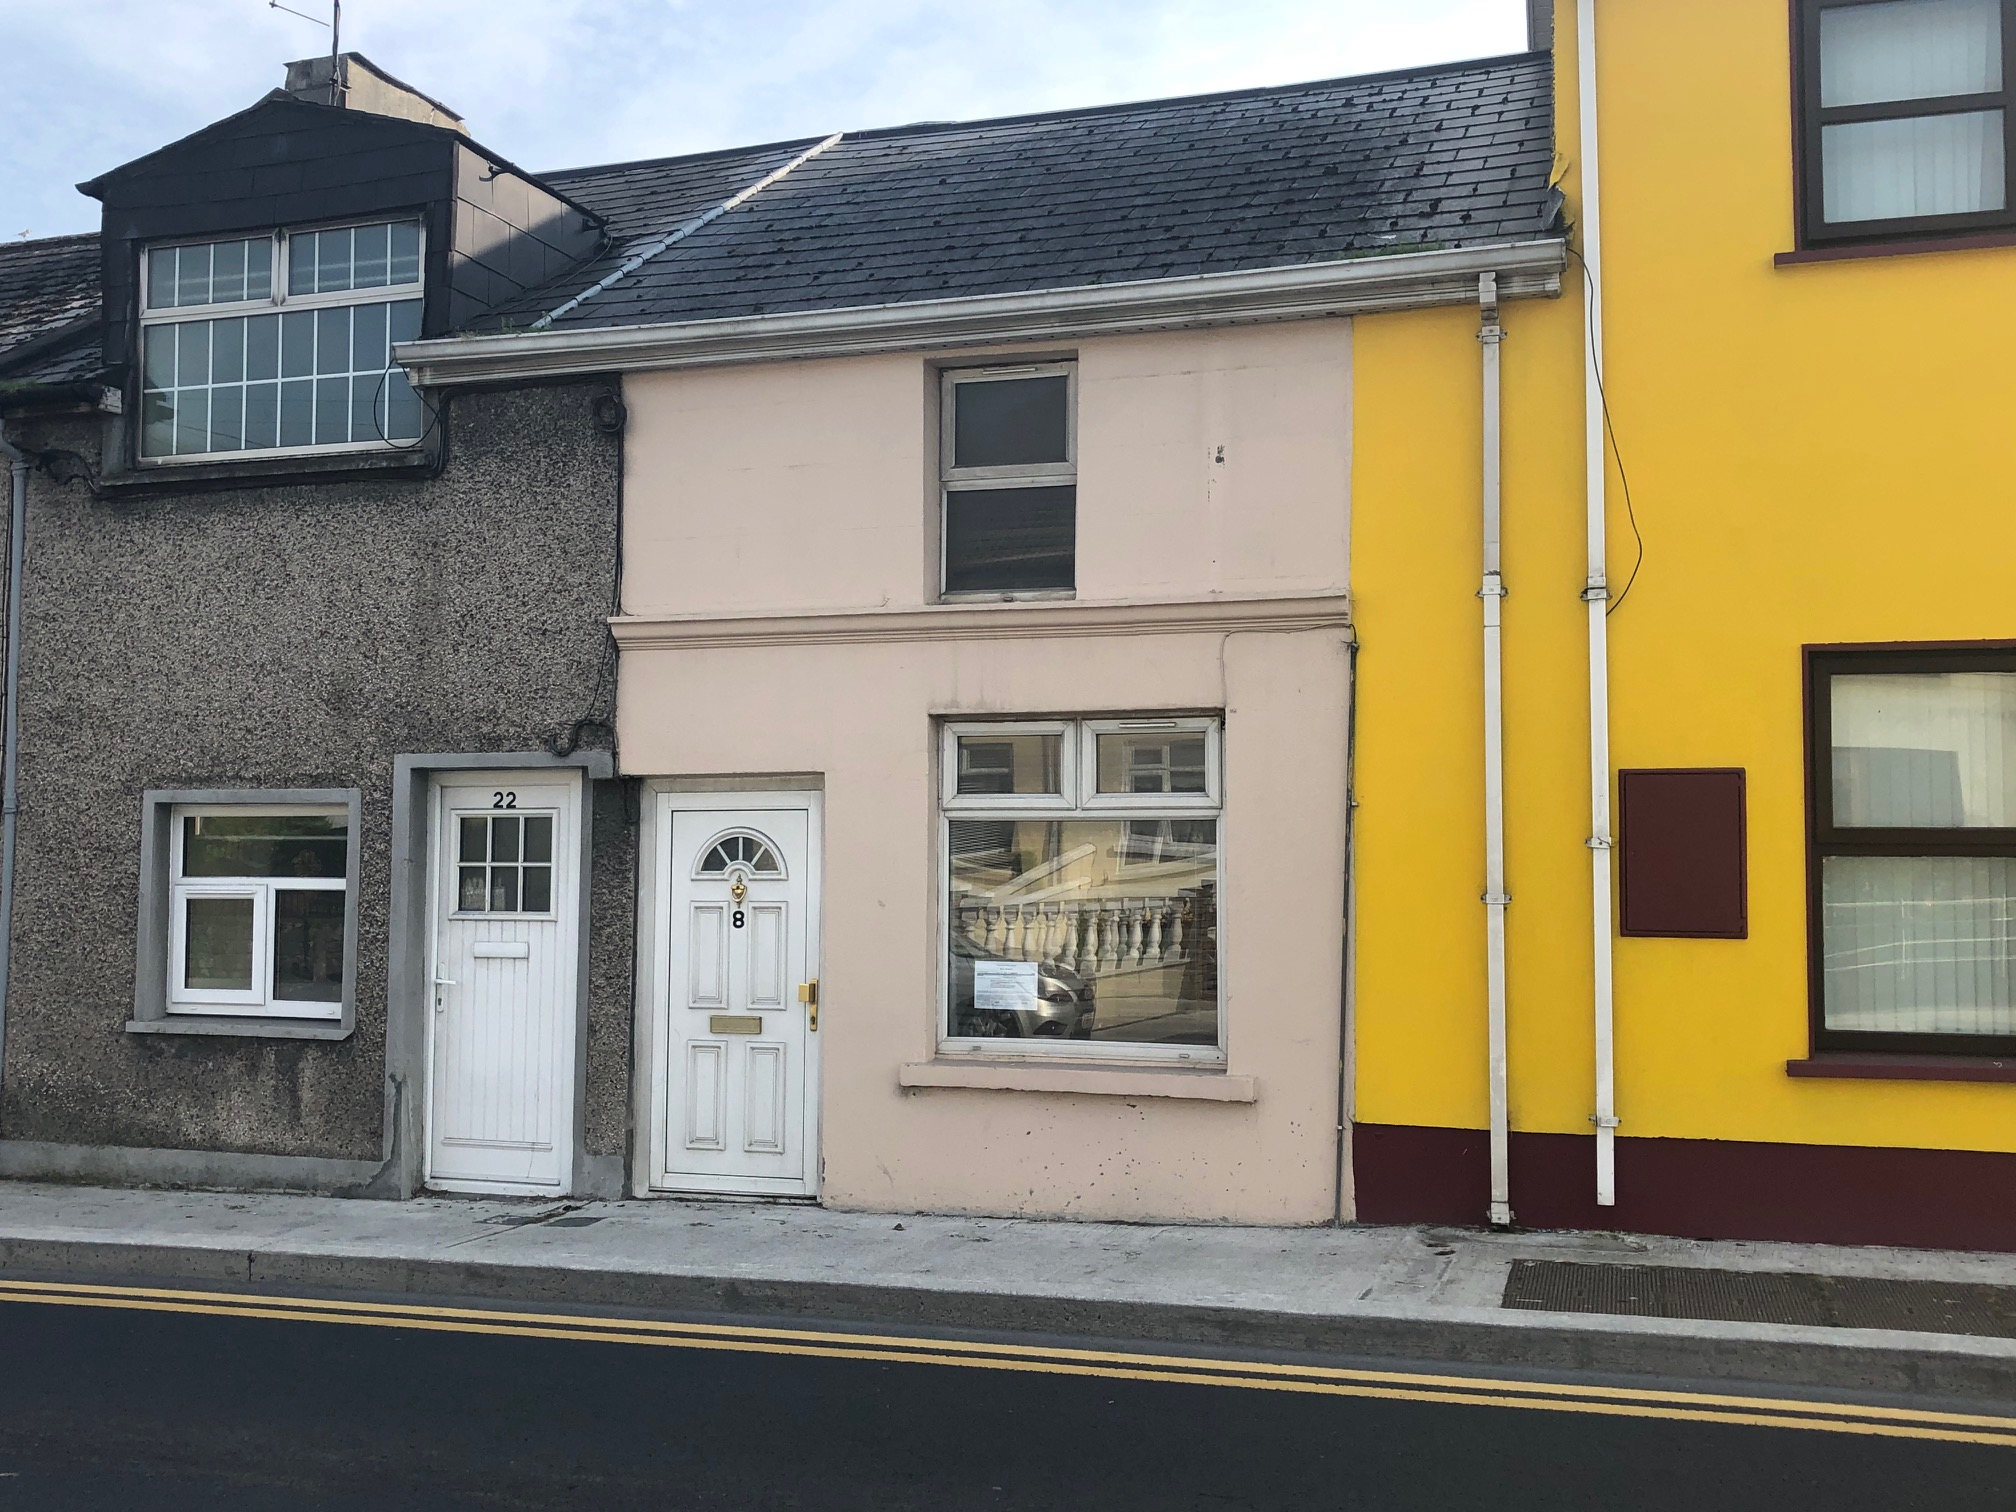 8 Upper Church Street, Tipperary Town, Co. Tipperary